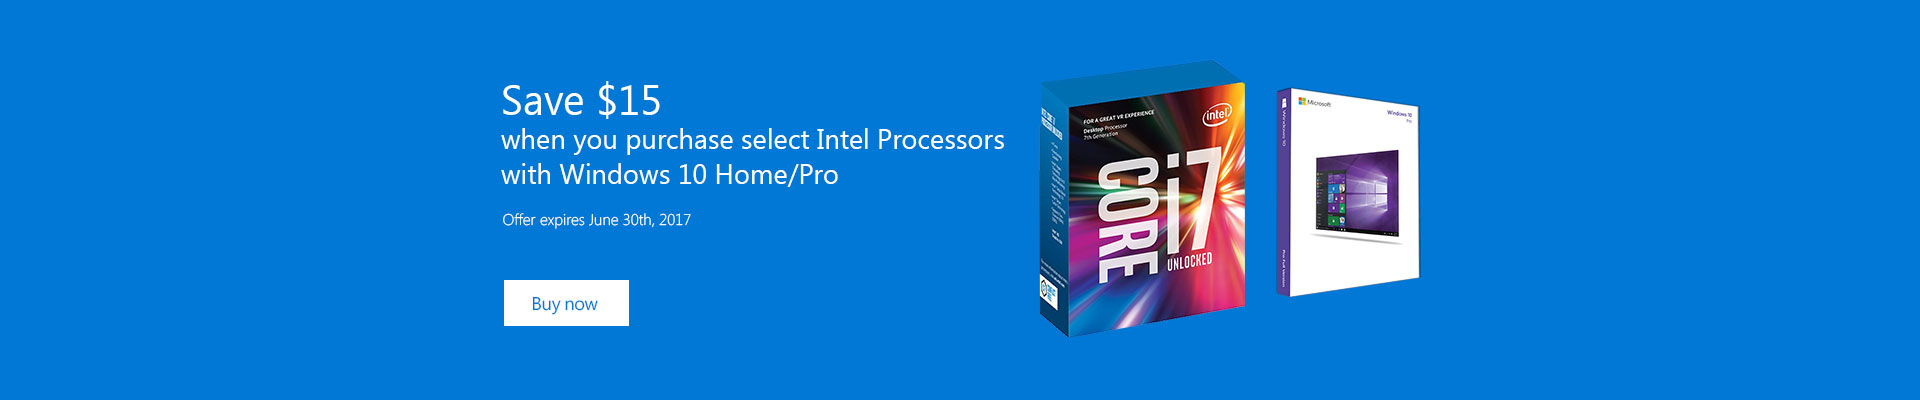 Intel CPU / Windows 10 Bundle